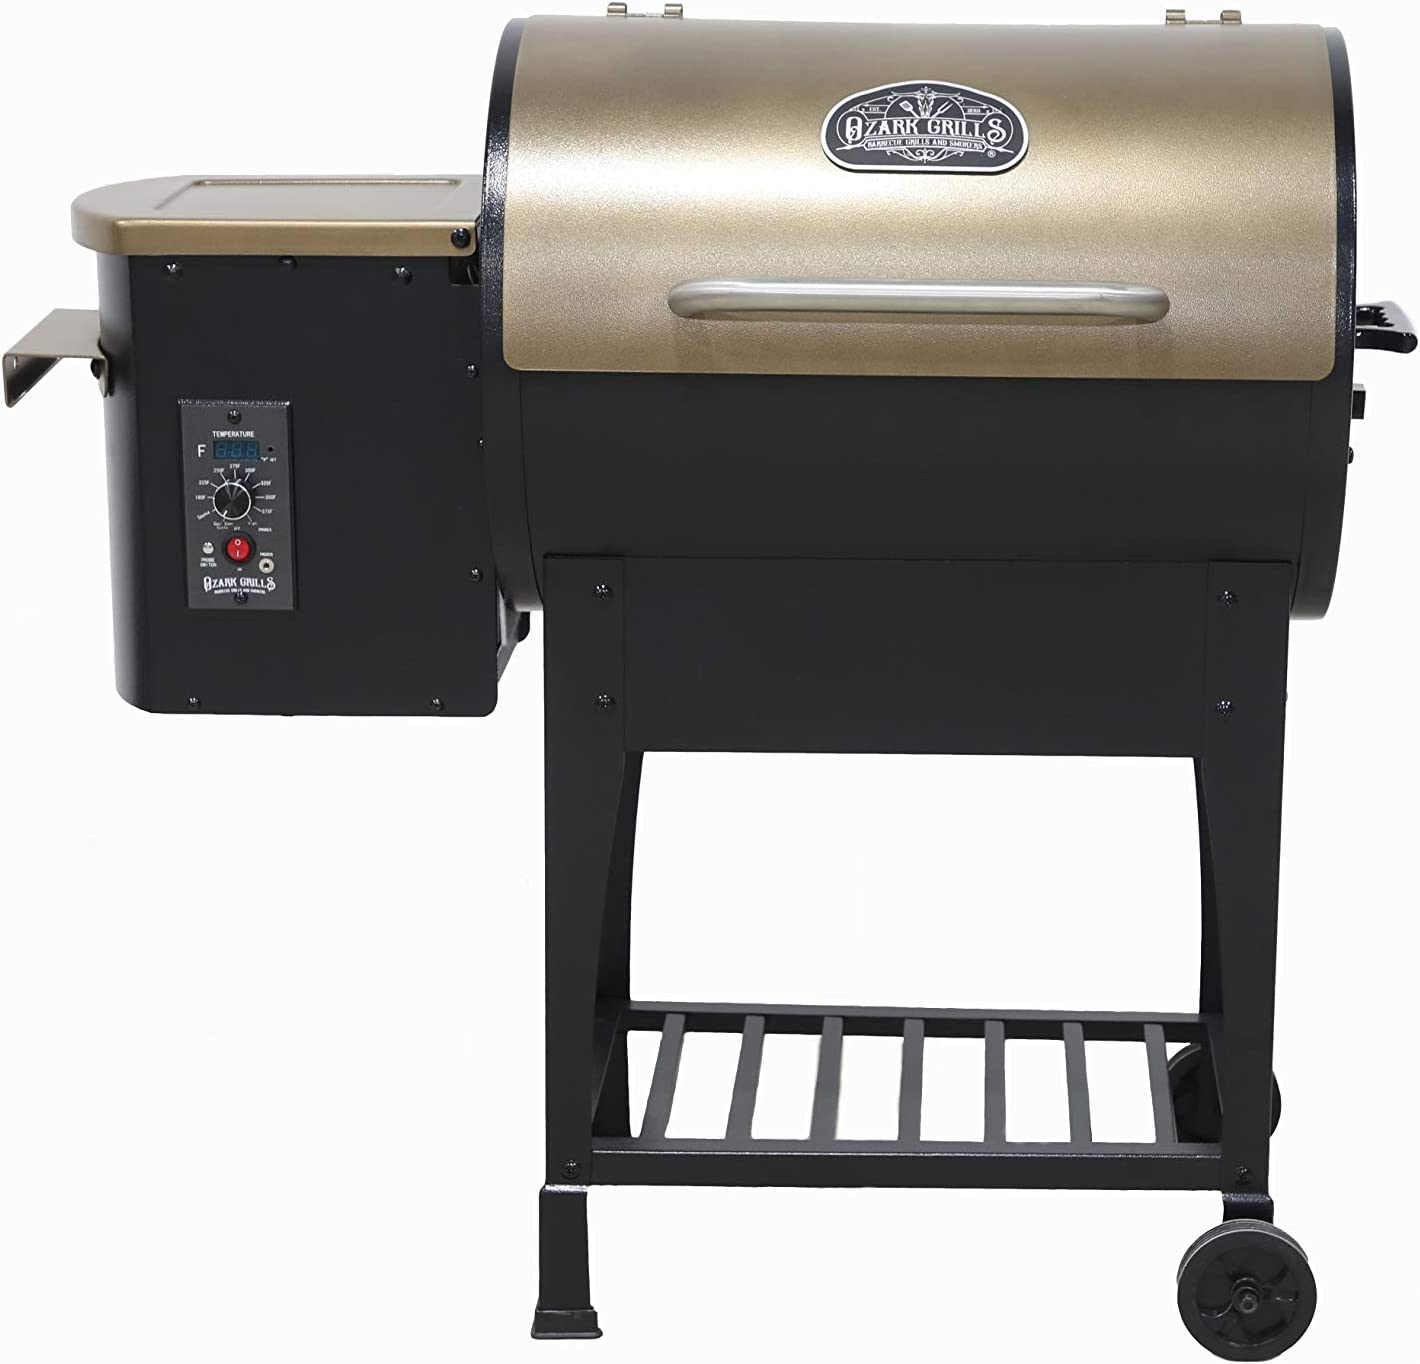 Best Set and Forget It: Ozark Grills - The Razorback Wood Pellet Grill